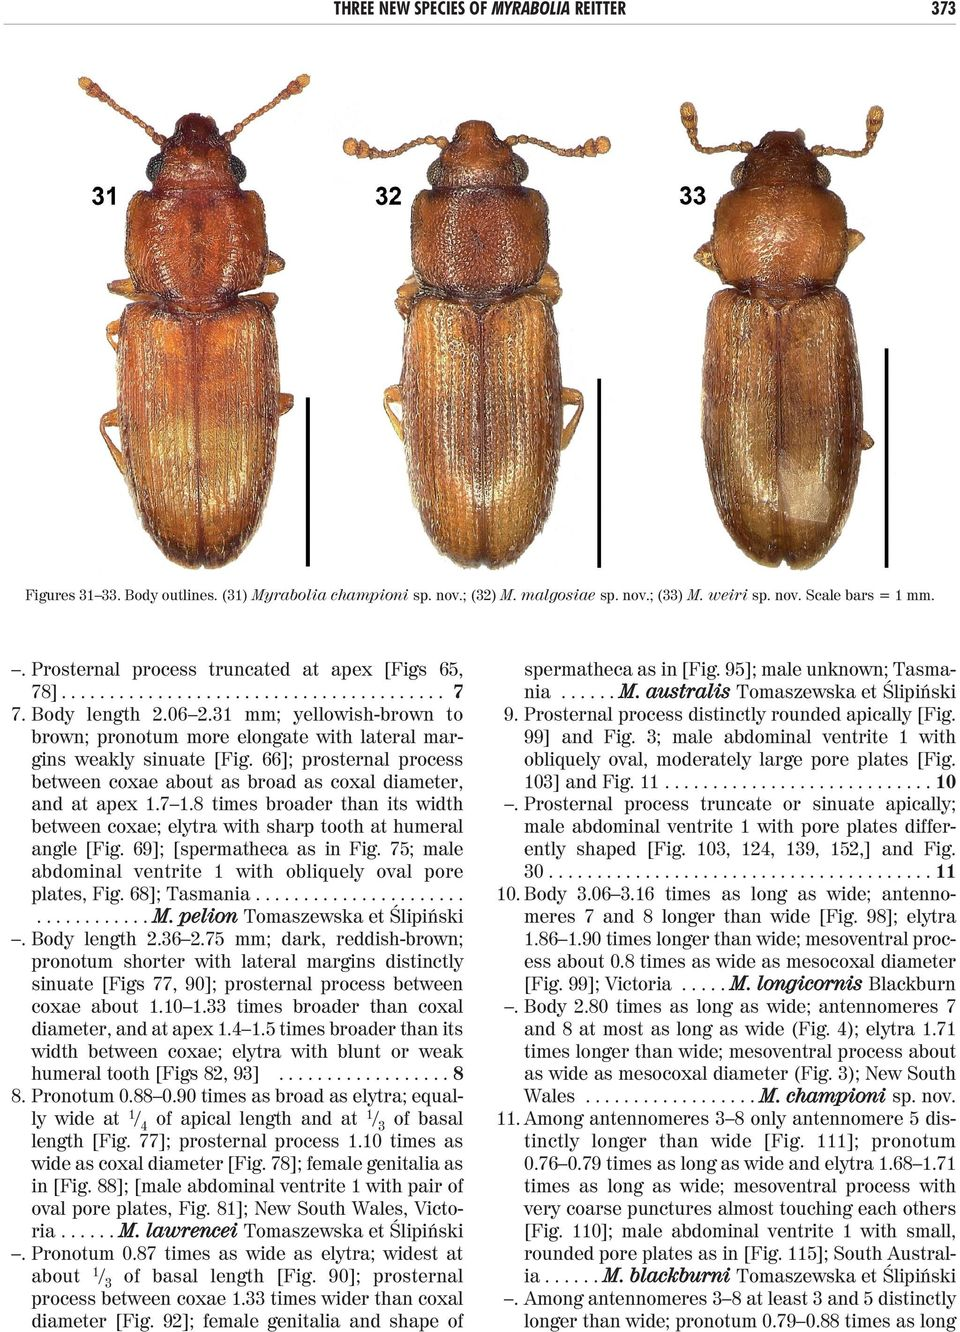 31 mm; yellowish-brown to brown; pronotum more elongate with lateral margins weakly sinuate [Fig. 66]; prosternal process between coxae about as broad as coxal diameter, and at apex 1.7 1.